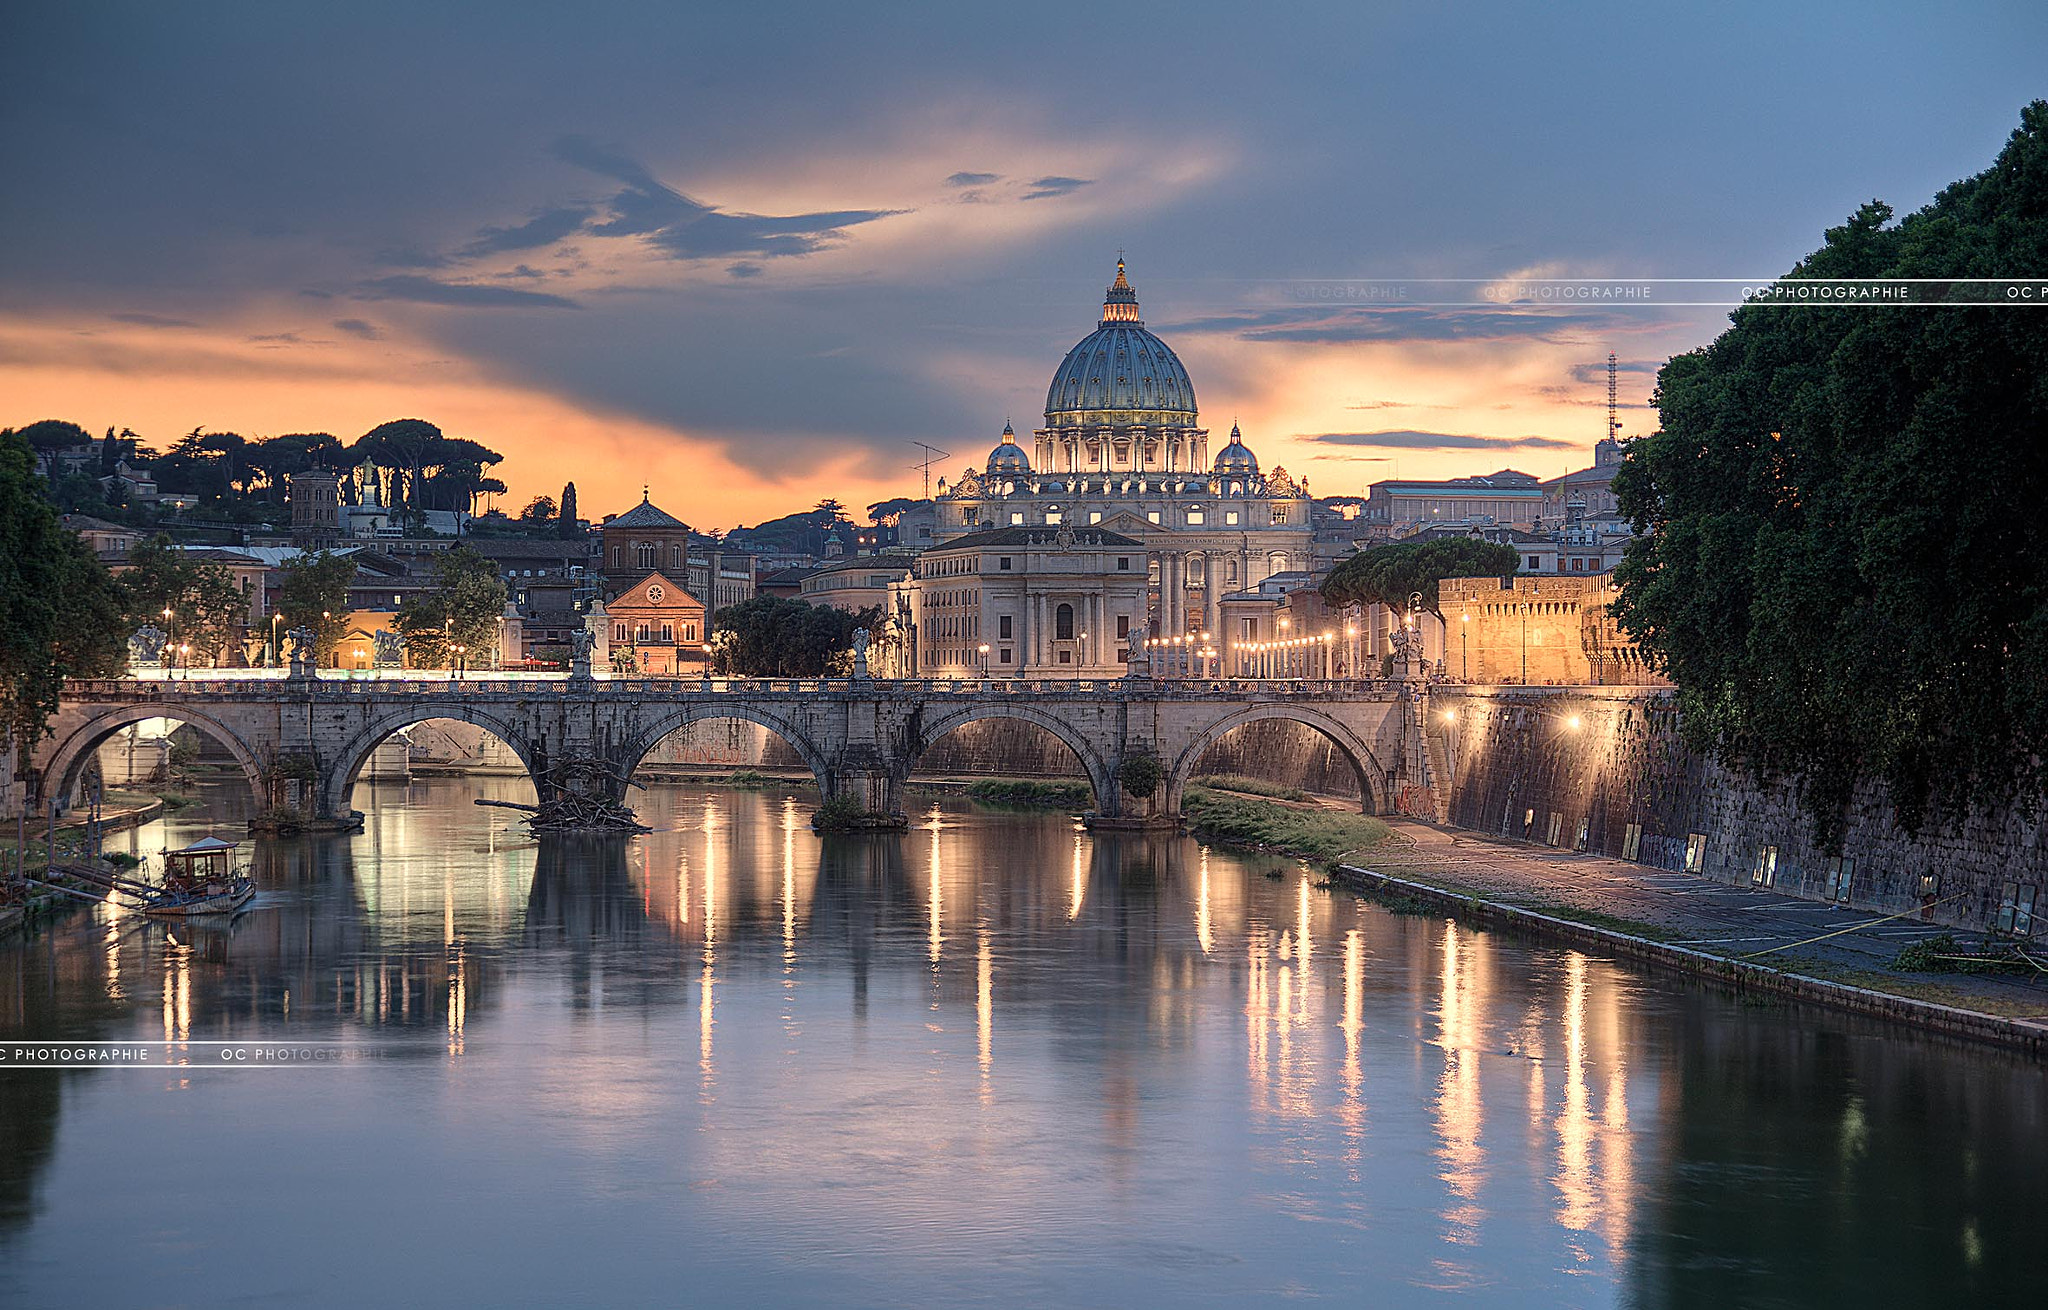 Photograph Night Vatican by OC Photographie on 500px